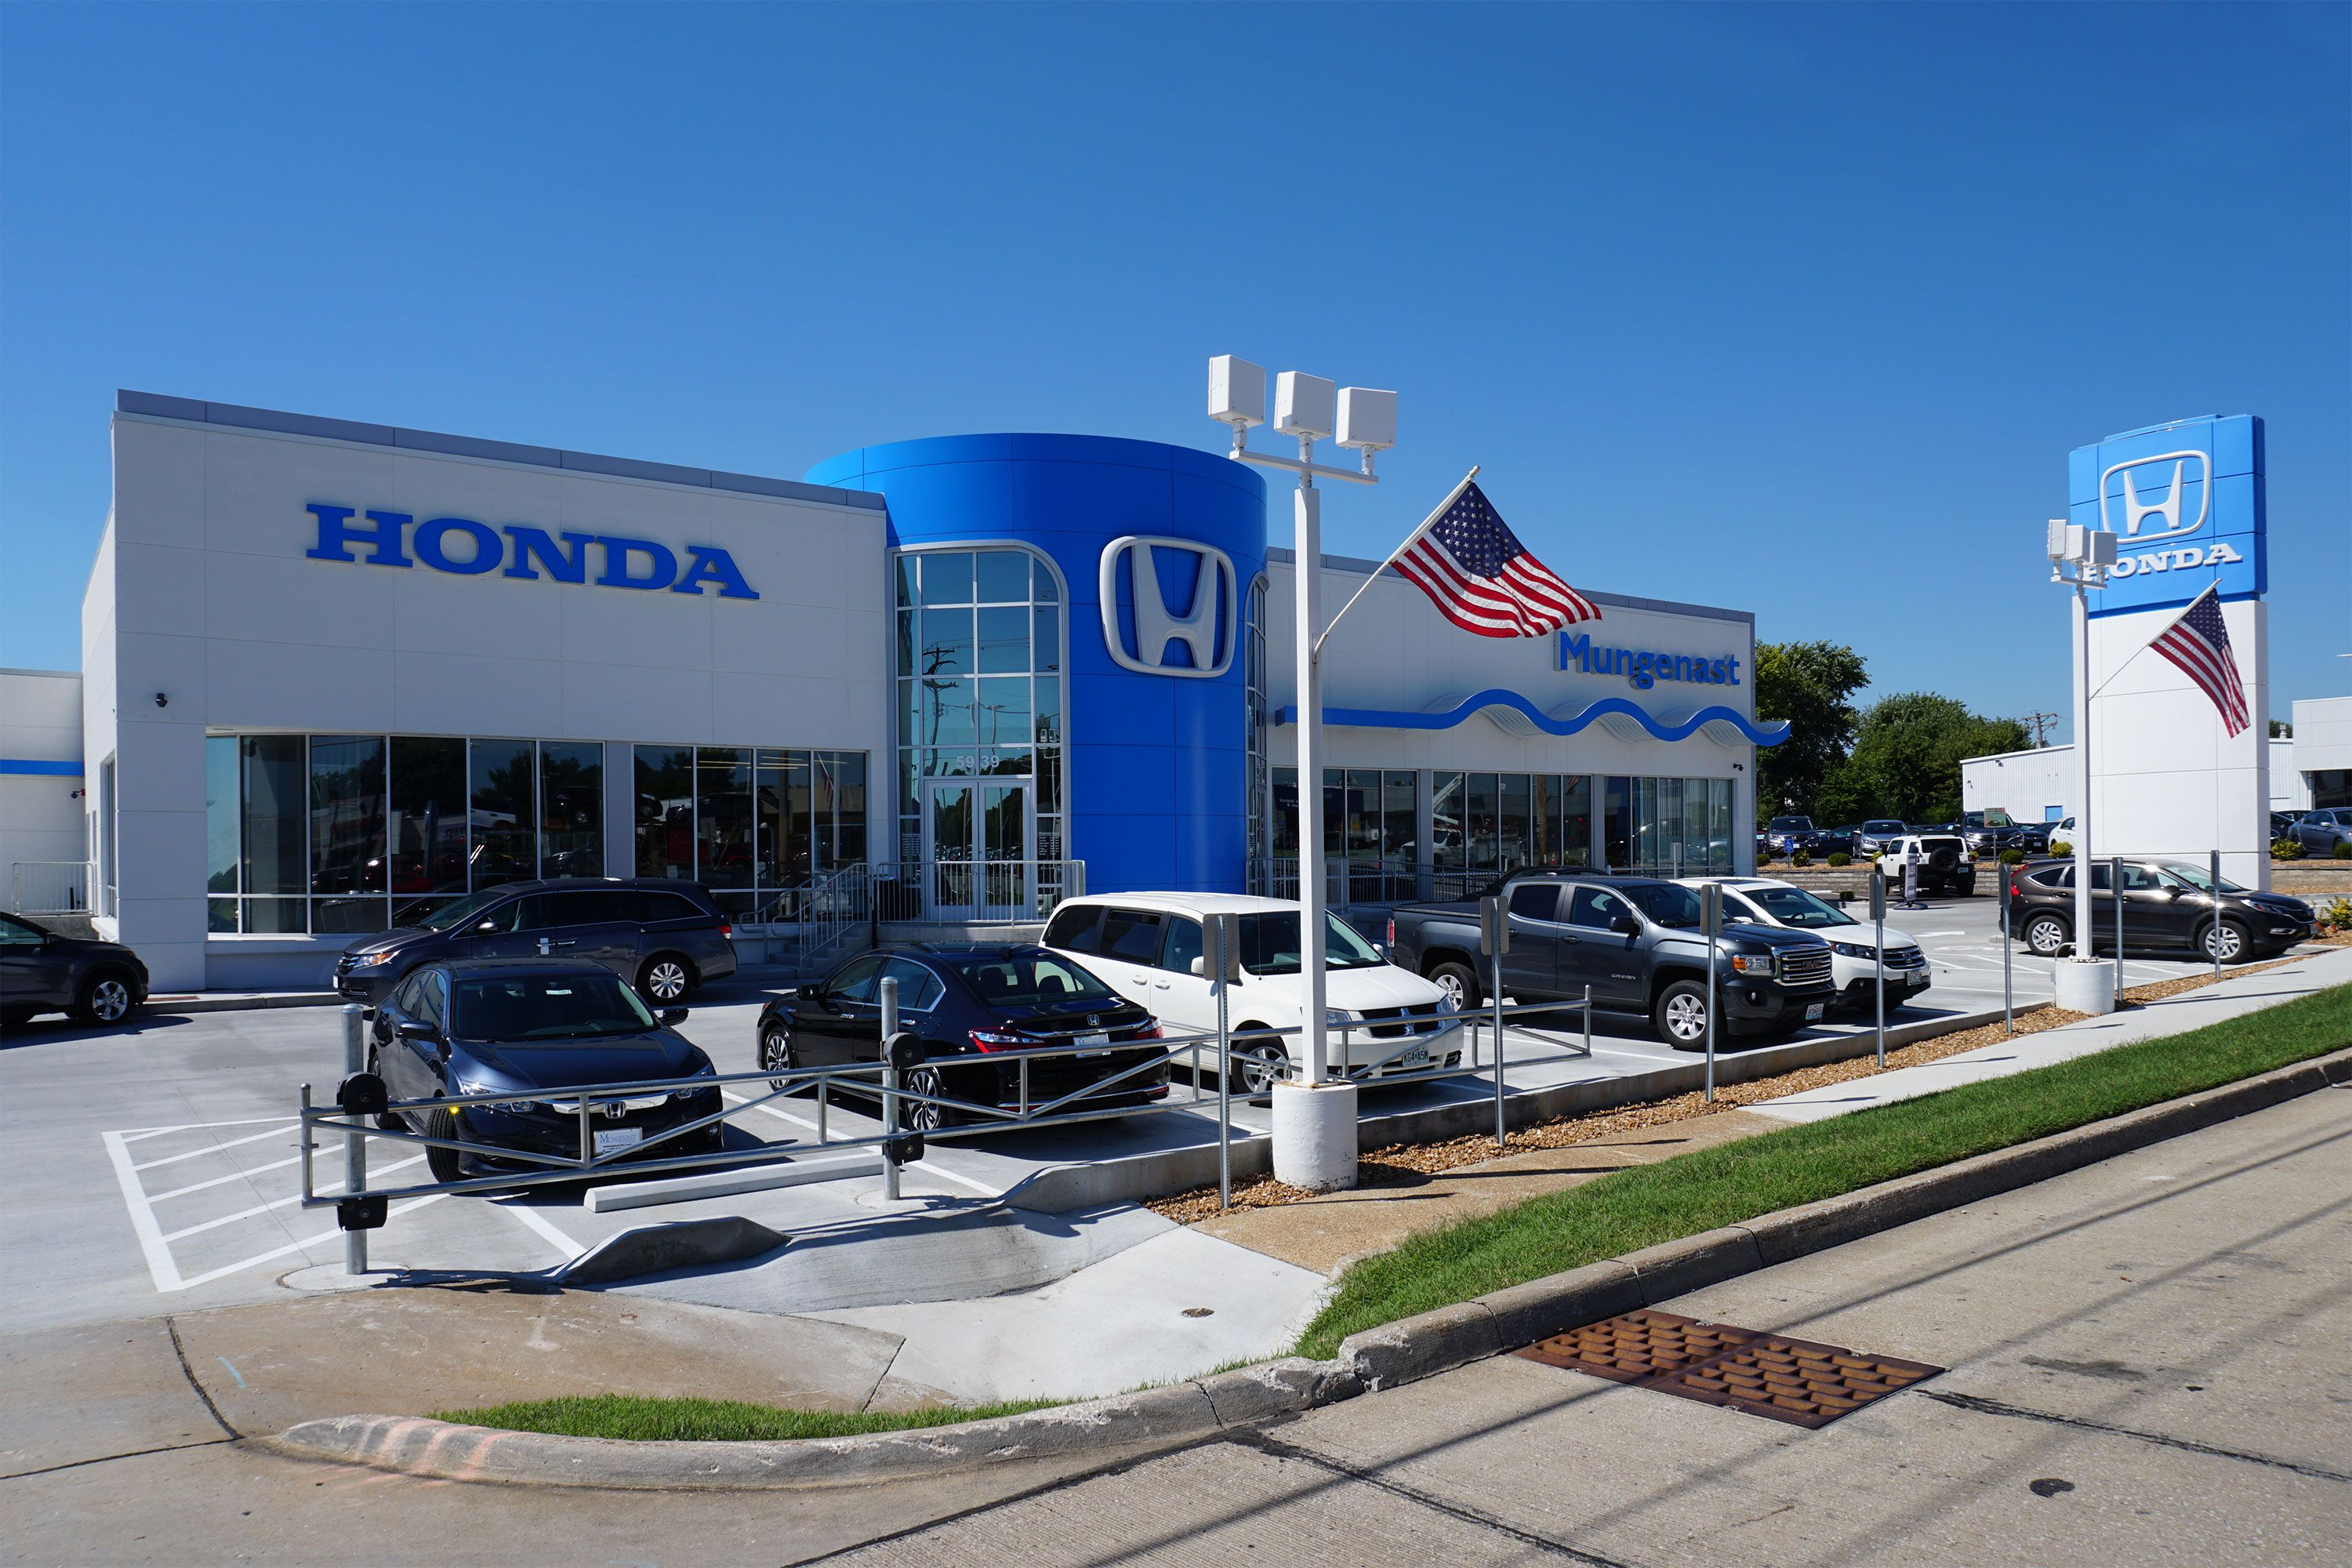 To Our Auto Dealer Affiliates The Mungenast Bid Sale Is Back Starting February 13th Every Wednesday From 9am Till 4pm Car Dealer New Honda New And Used Cars